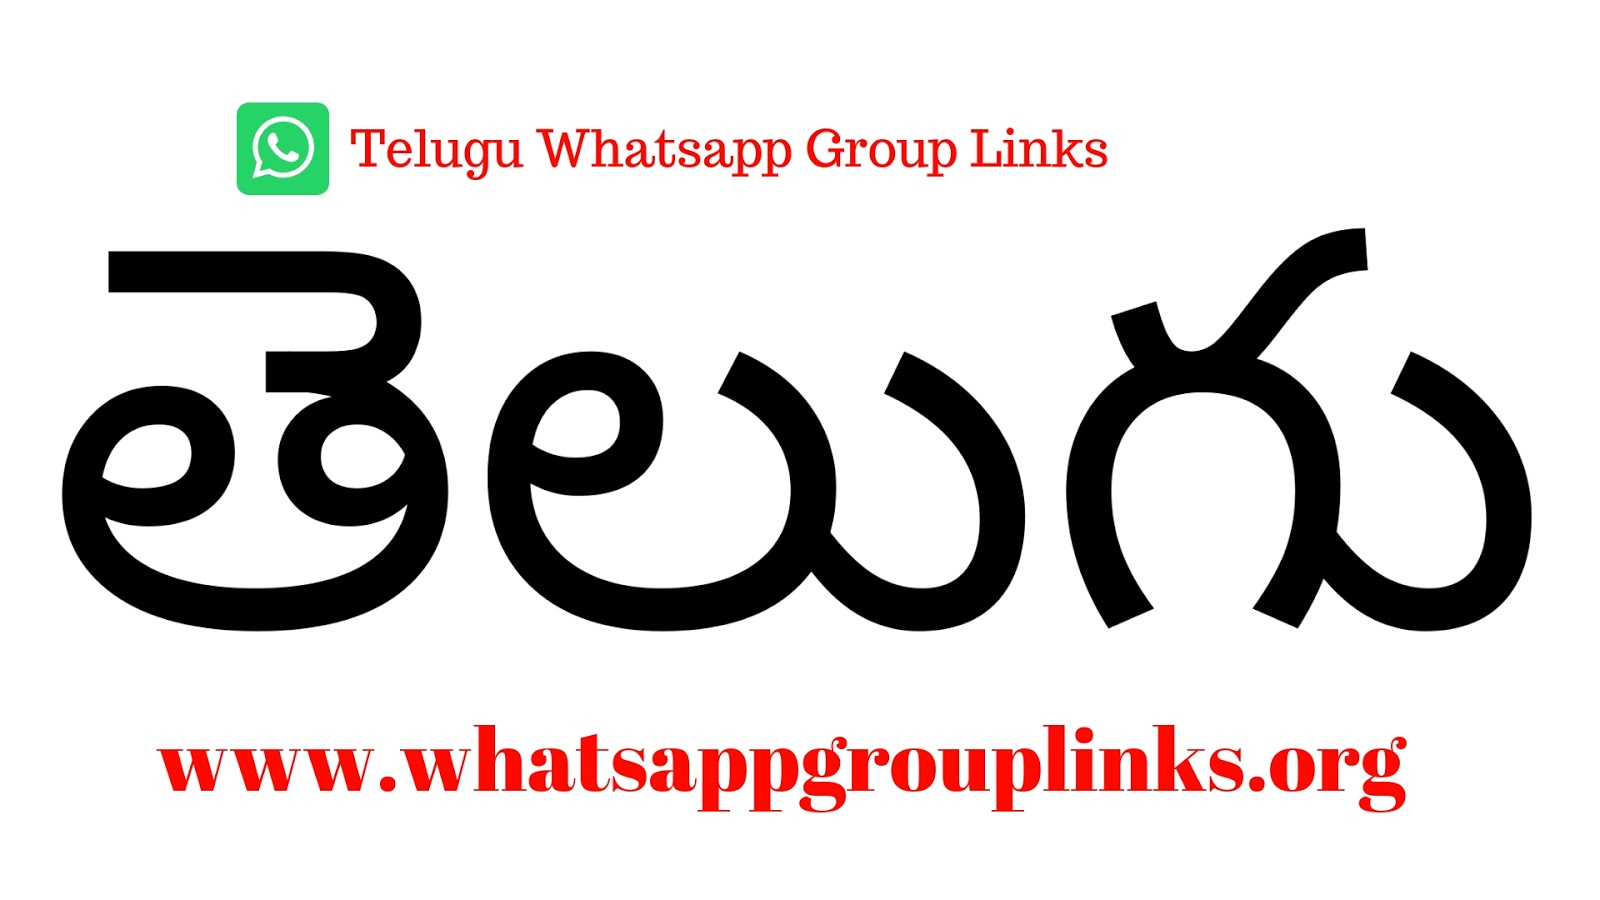 JOIN 150+ TELUGU WHATSAPP GROUP LINKS LIST - Whatsapp Group Links